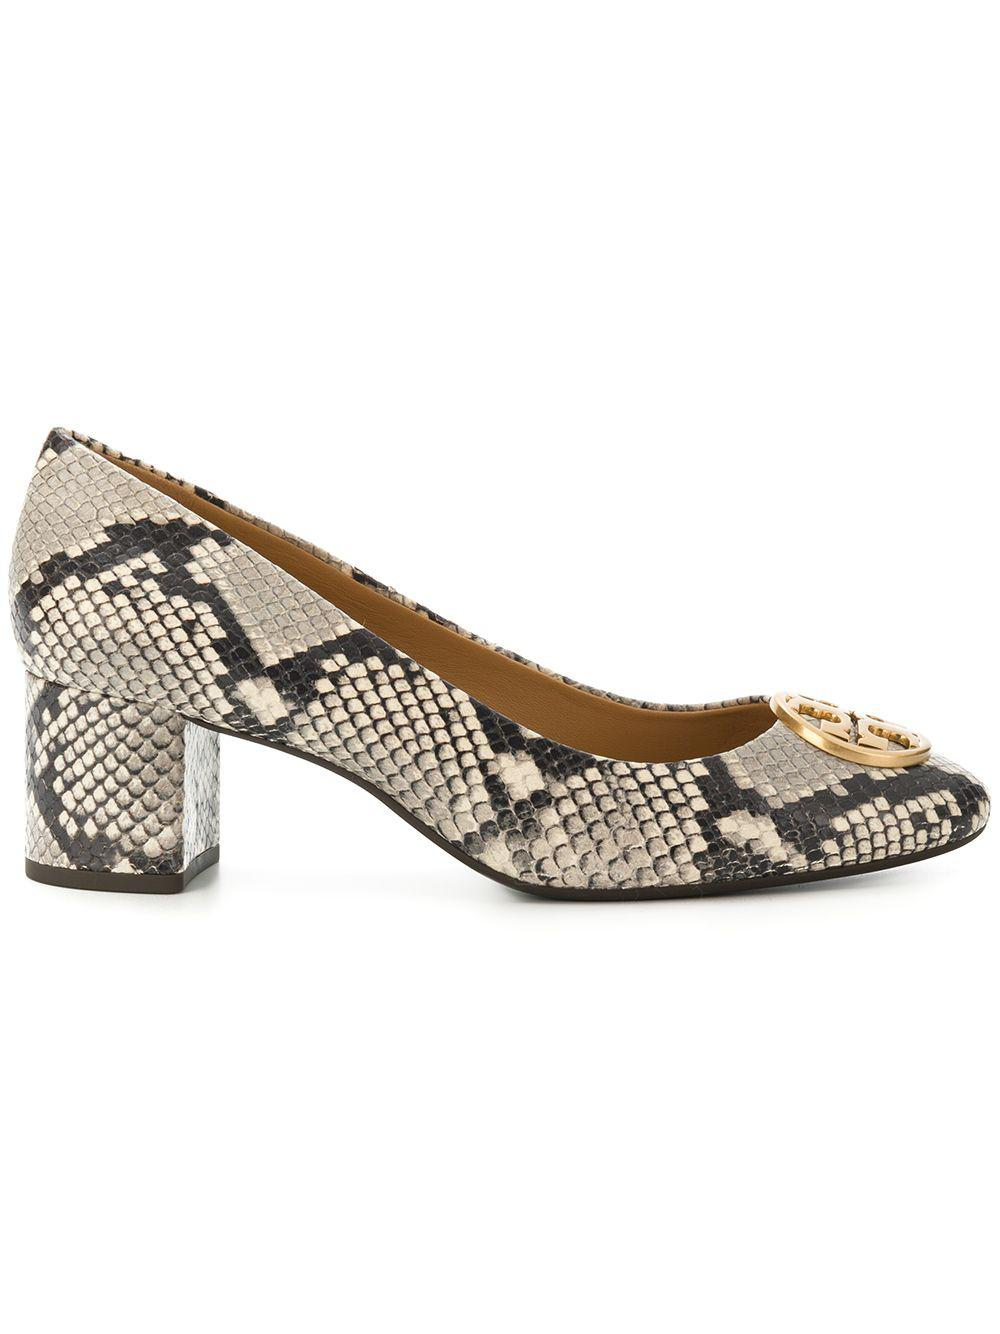 ac5a39989 Lyst - Tory Burch Python Printed Pumps in Natural